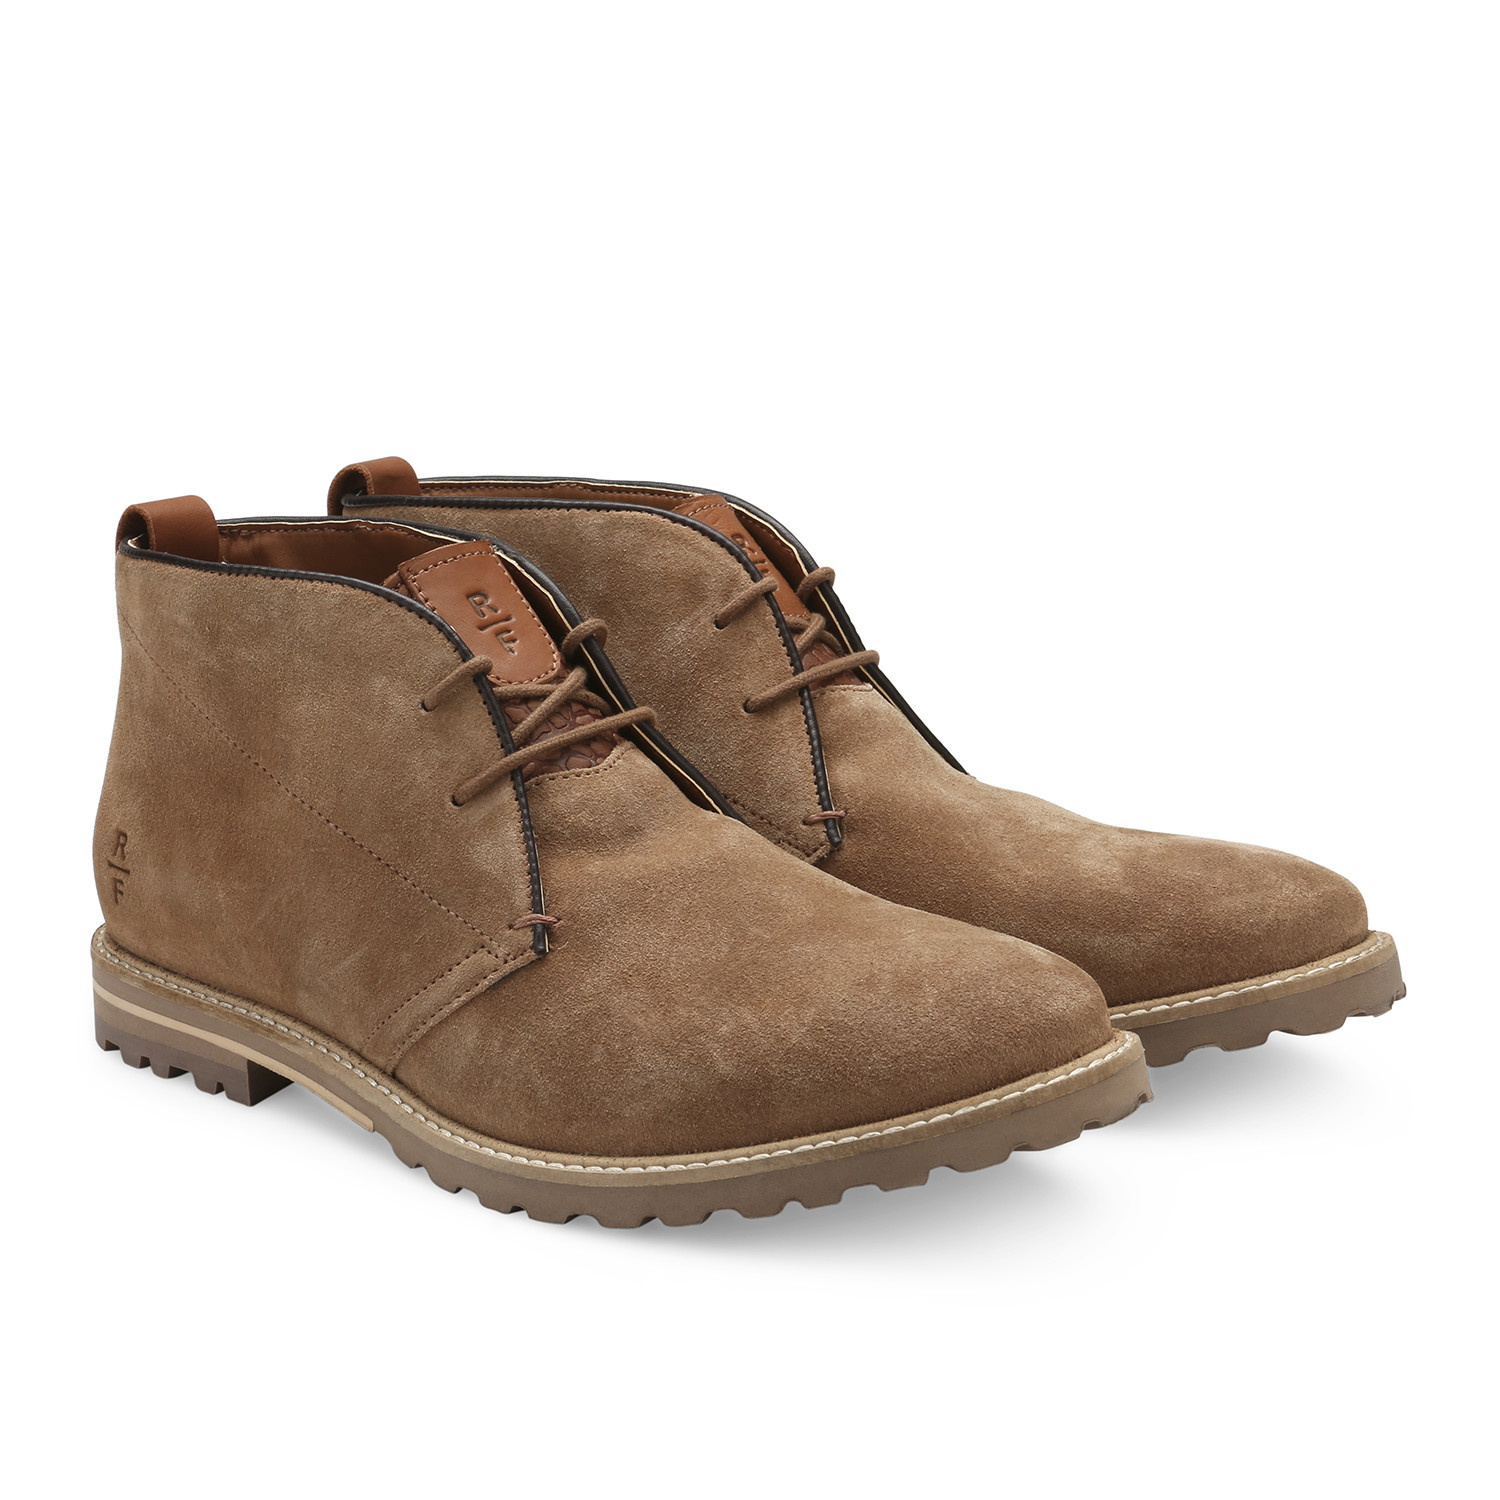 Conway Chukka Boot // Camel (US: 7.5) - Reserved